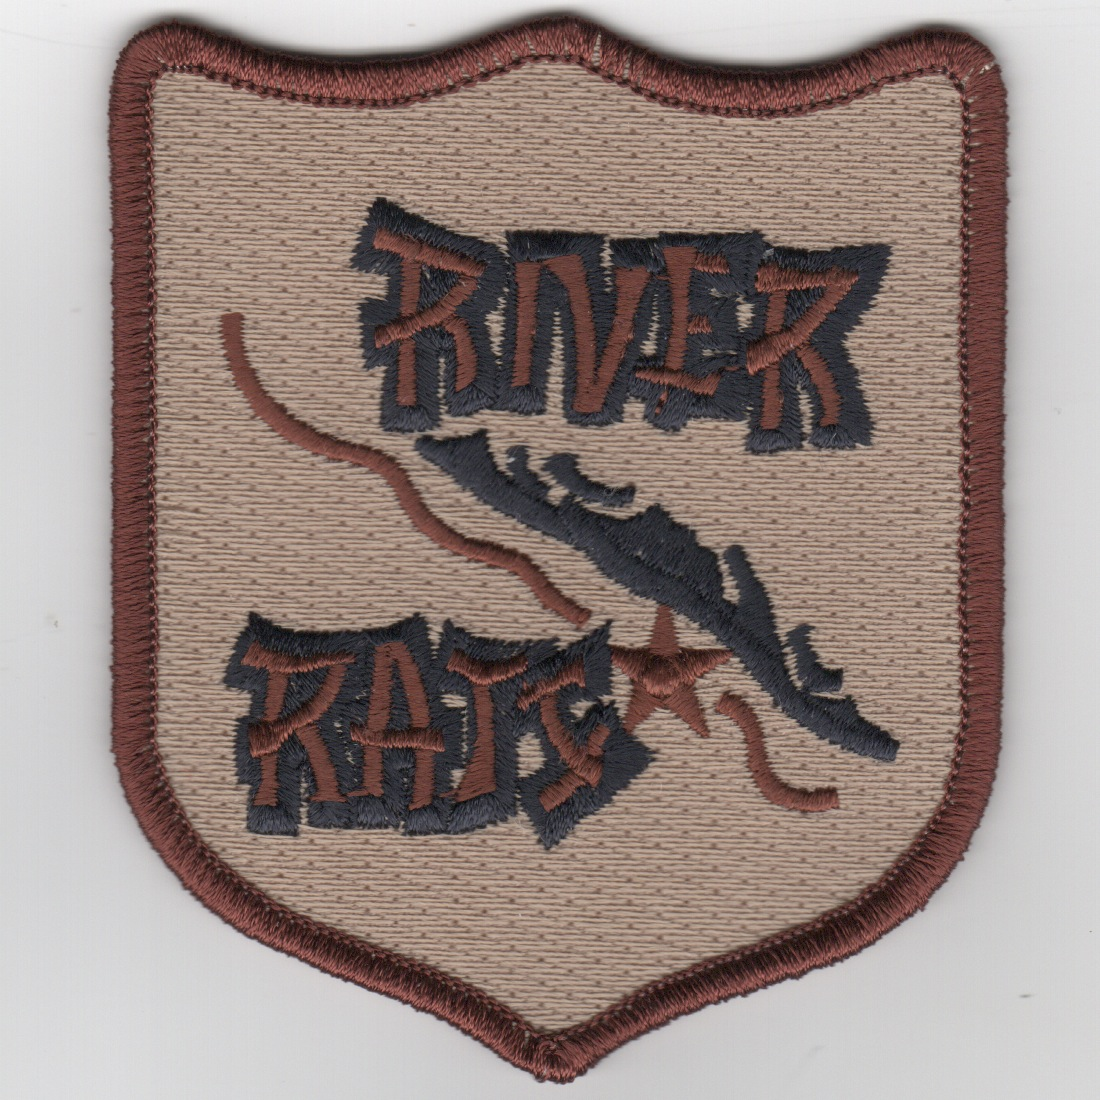 RRVA Patch (Lrg/Des/No Velcro)